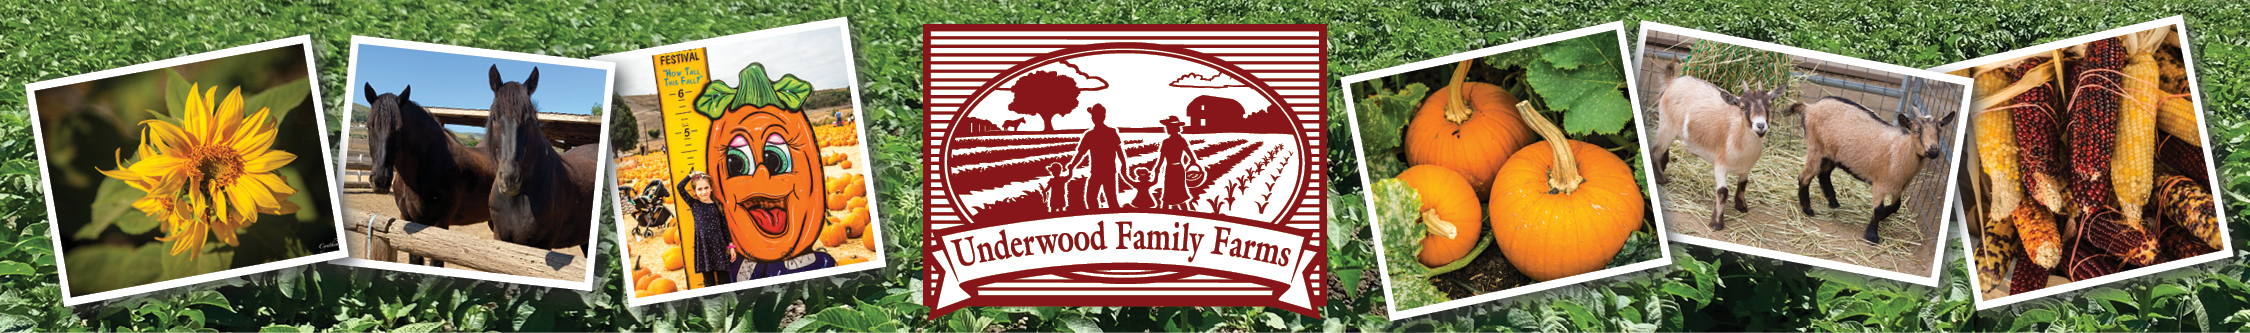 Underwood Family Farms Fall Harvest 2020